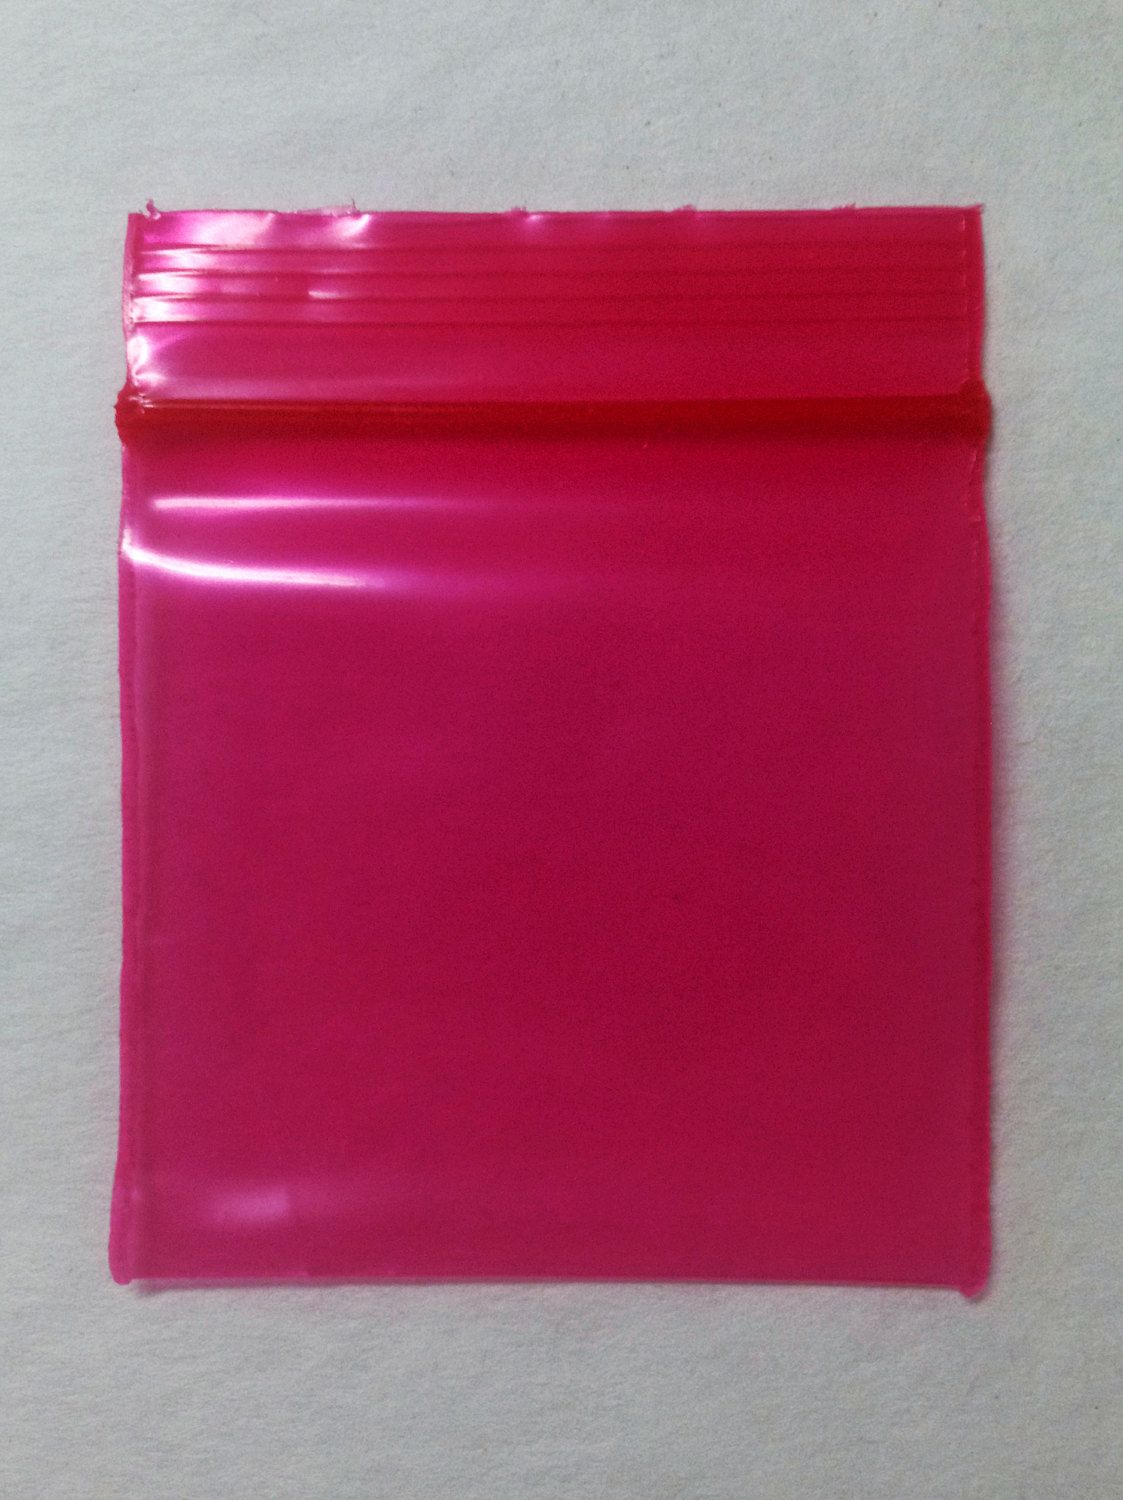 100 1 5 X Red Pink Plastic Small Baggies Rave 1515 Tiny Ziplock Dime Bags By Nooyouproducts On Etsy